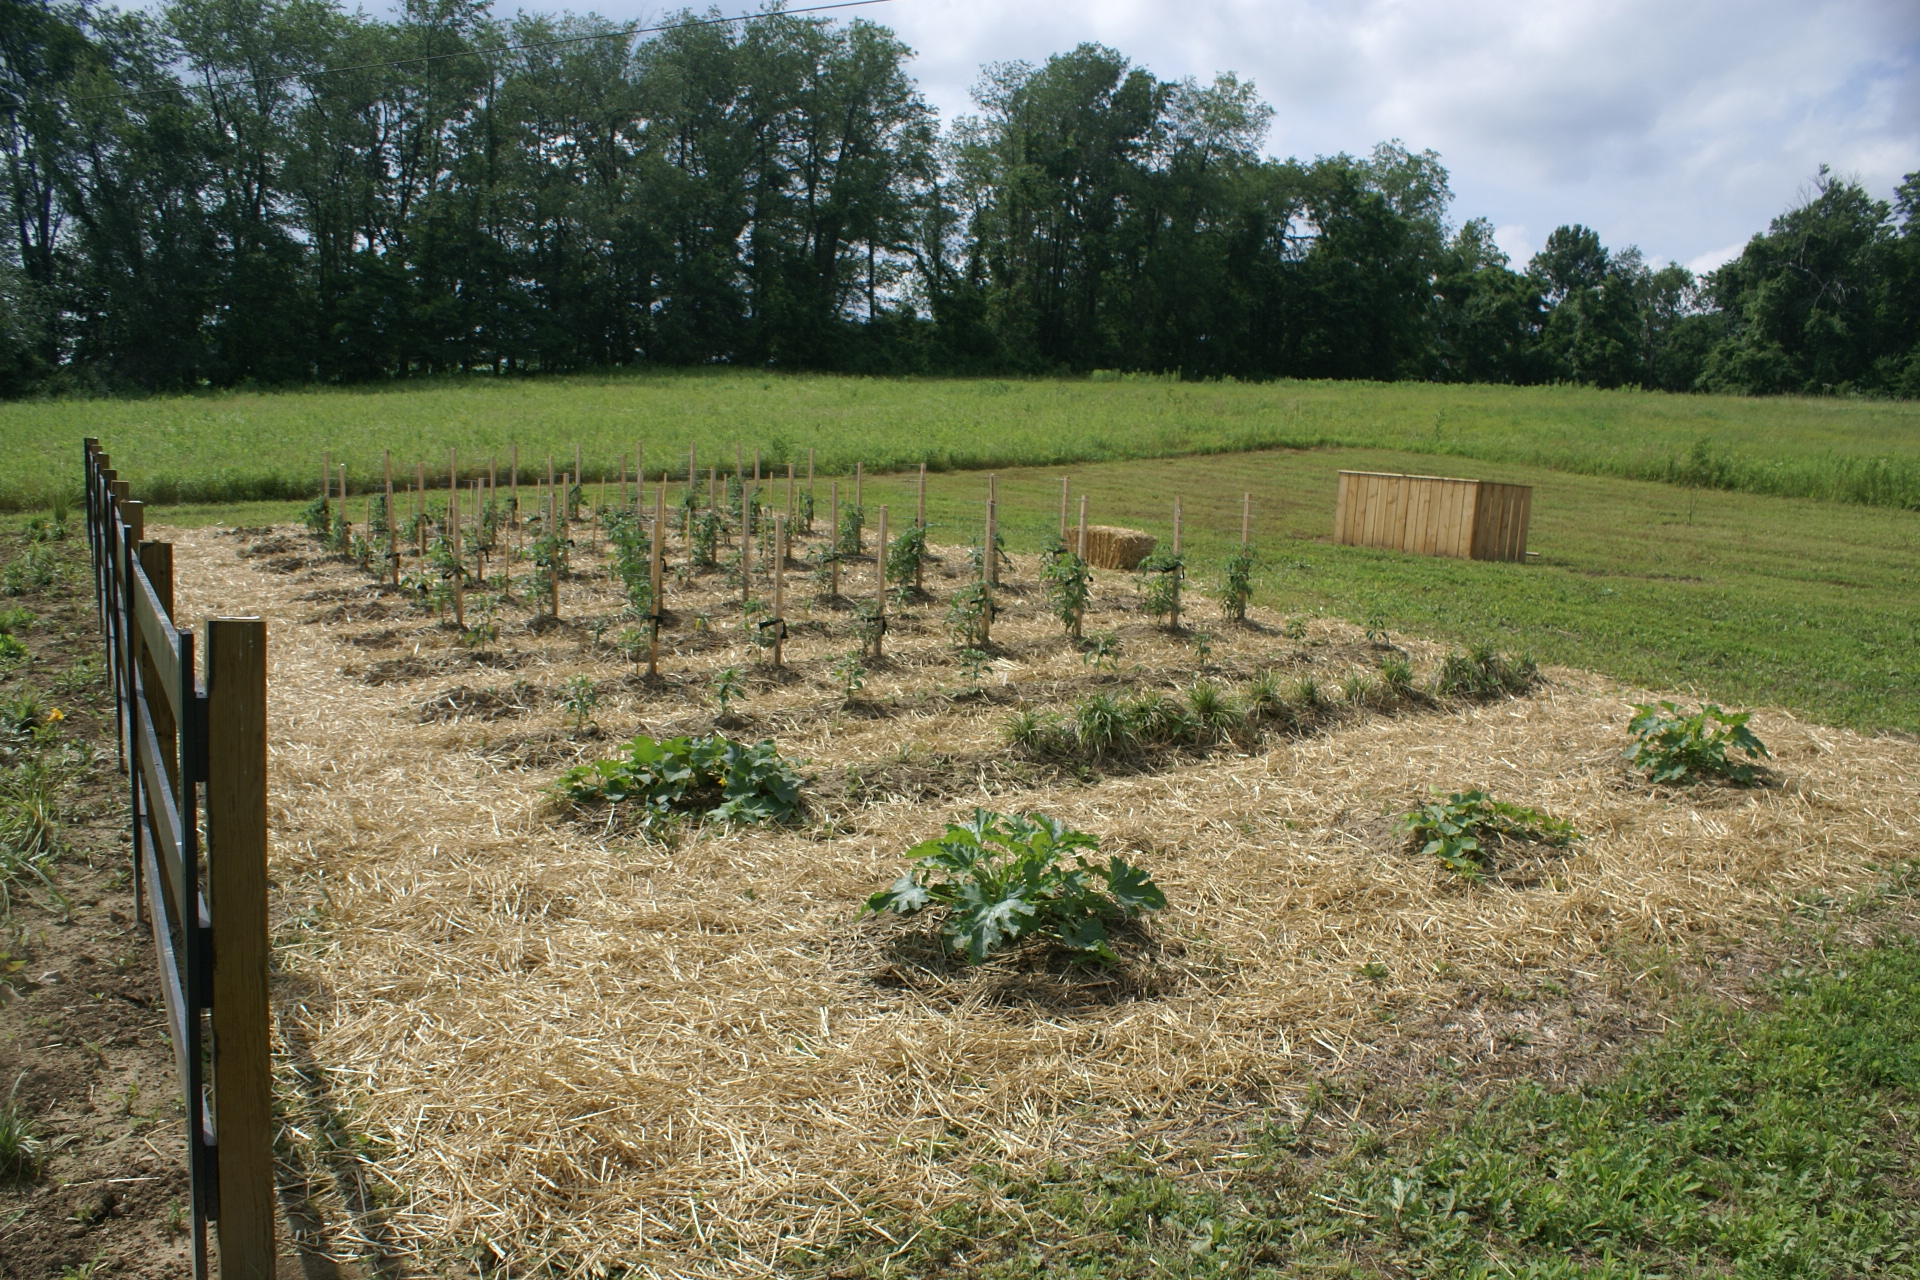 Delightful This Is A Photo Of Our First Raised Row Bed We Installed On The Farm. Our  Original Garden Was 20 X 40. We Were Able To Have It All Planted In About  ...